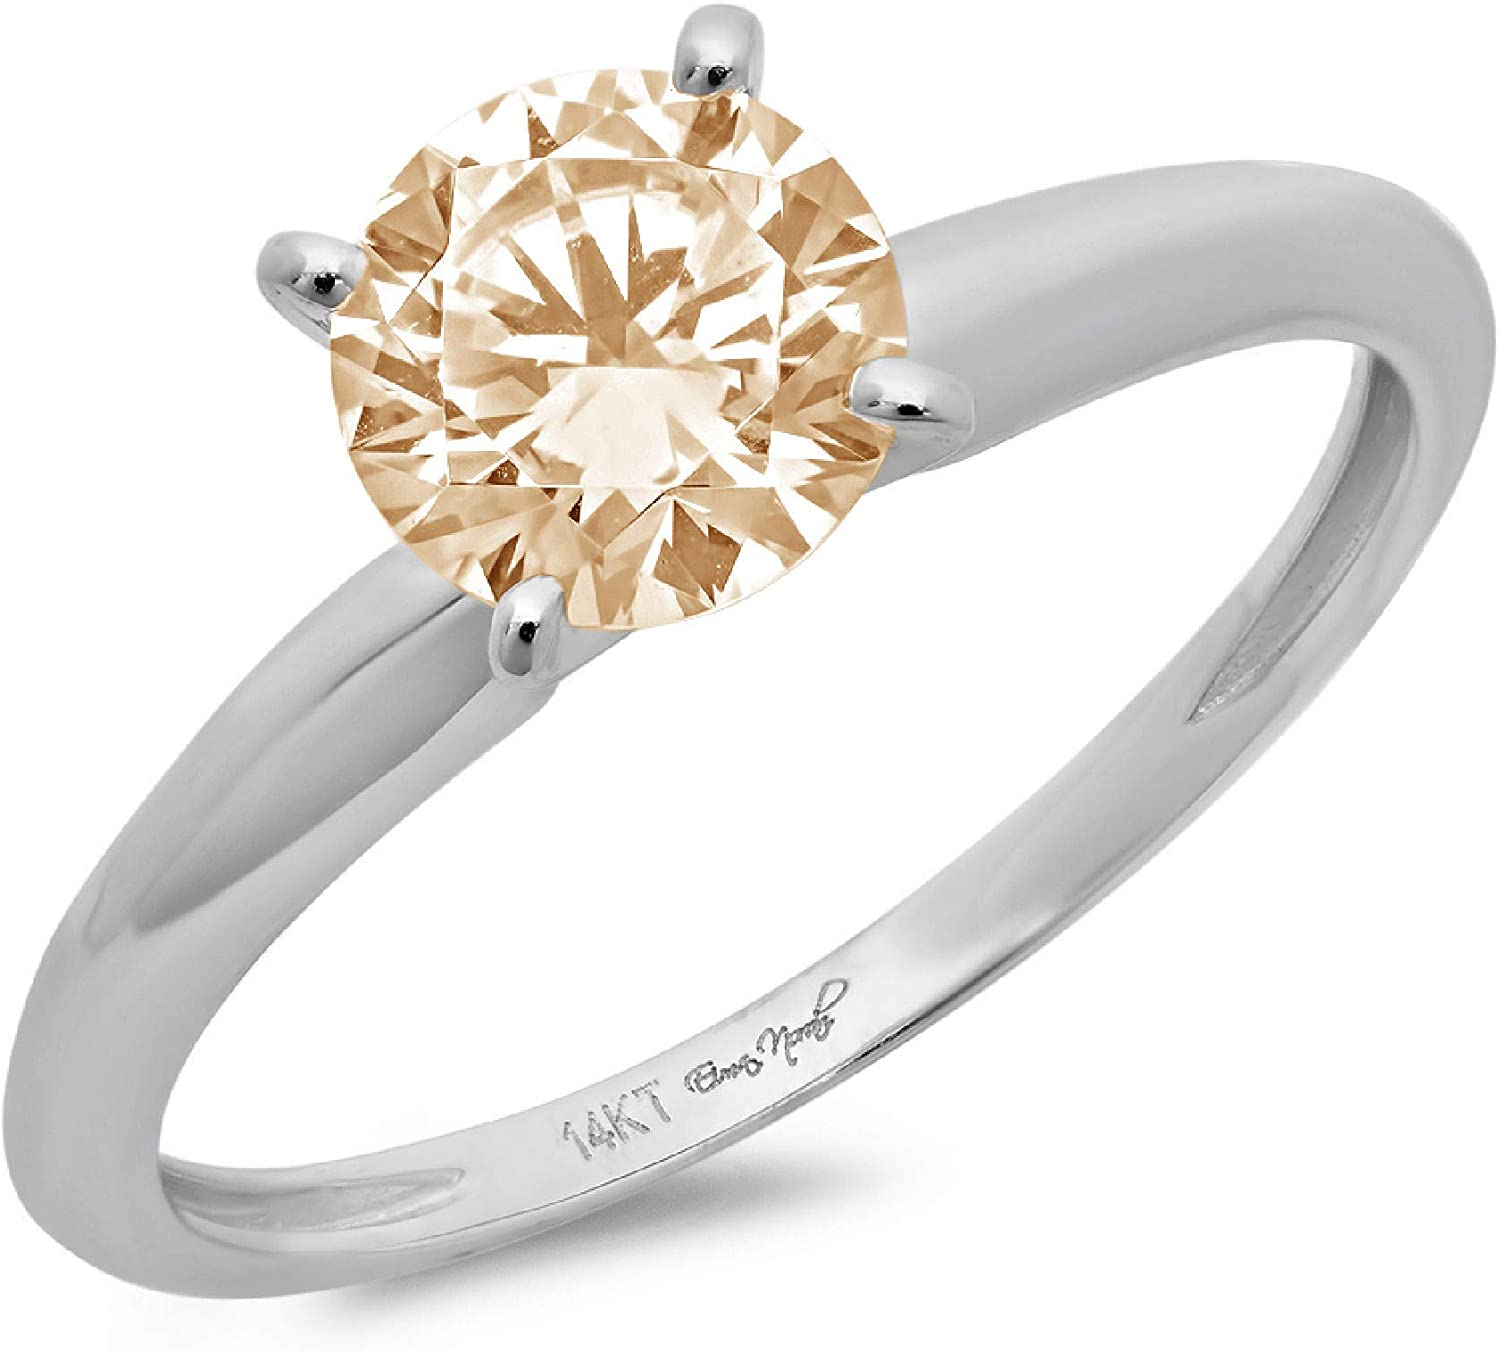 2.0 ct Brilliant Round Cut Solitaire Flawless Stunning Yellow Moissanite Ideal 4-Prong Engagement Wedding Bridal Promise Anniversary Designer Ring in Solid 18K White Gold for Women